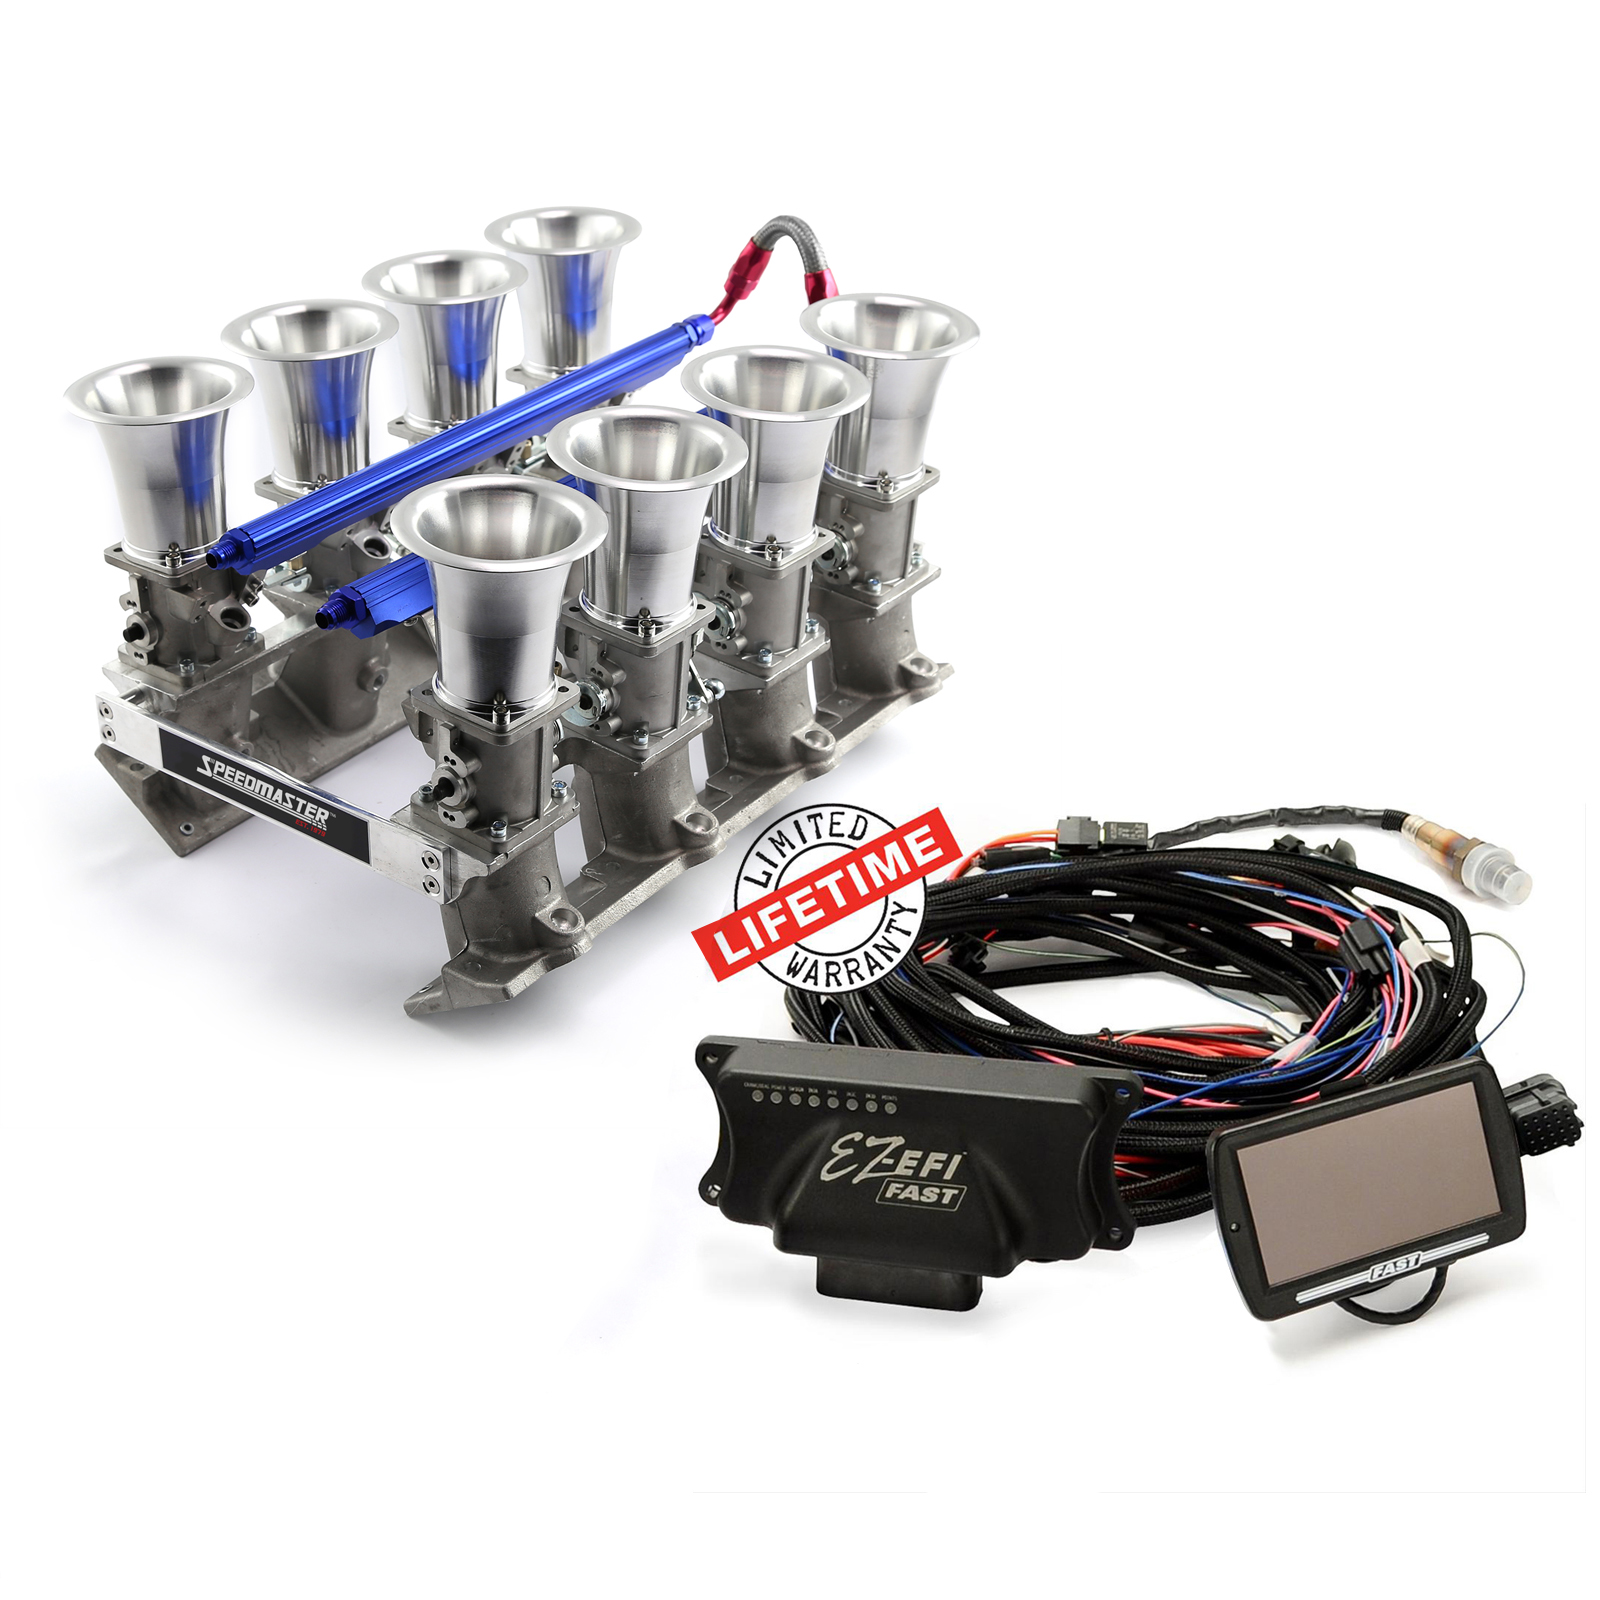 FAST, PCE® PCE148.1075 Chevy GM LS3 EFI Manifold & FAST EZ-EFI 2.0 Self-Tuning Fuel Injection System